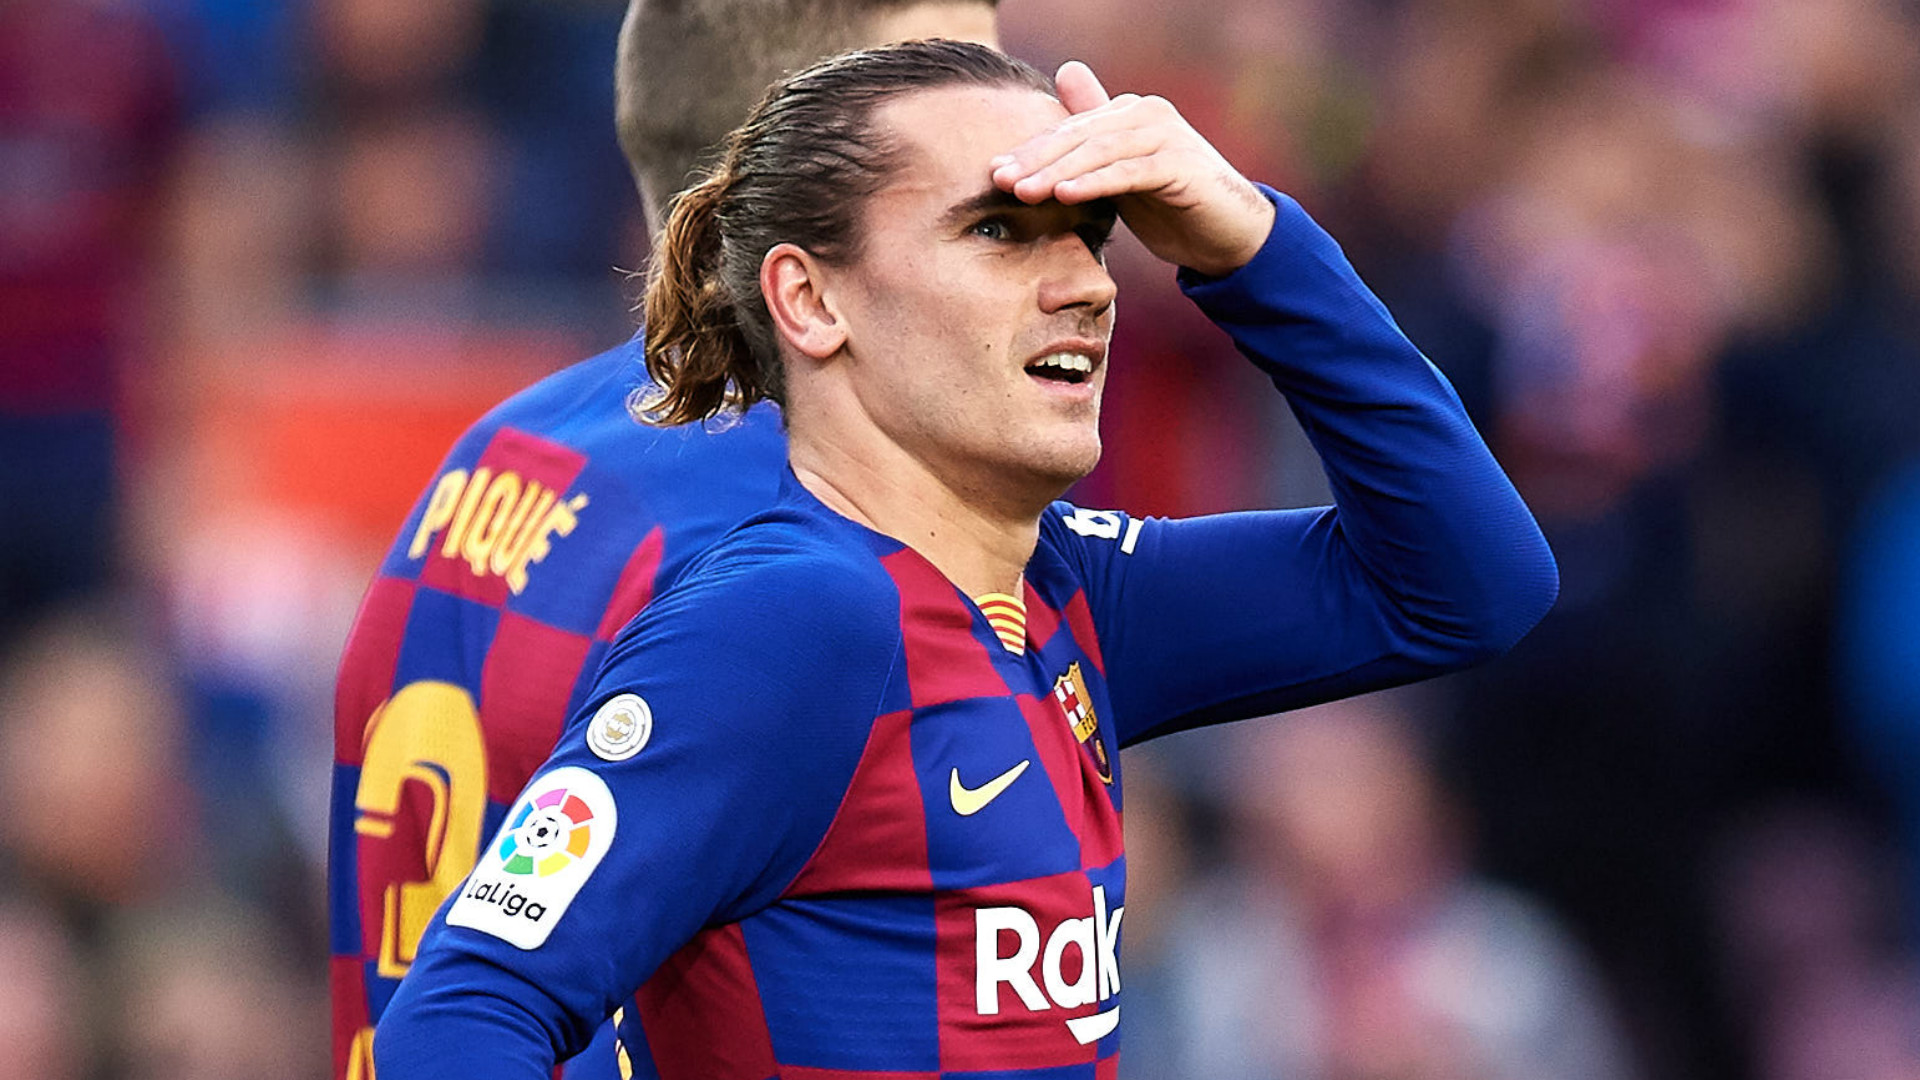 Barcelona vs Leganes: Setien explains why he substituted Ansu Fati early, rates Griezmann's performance